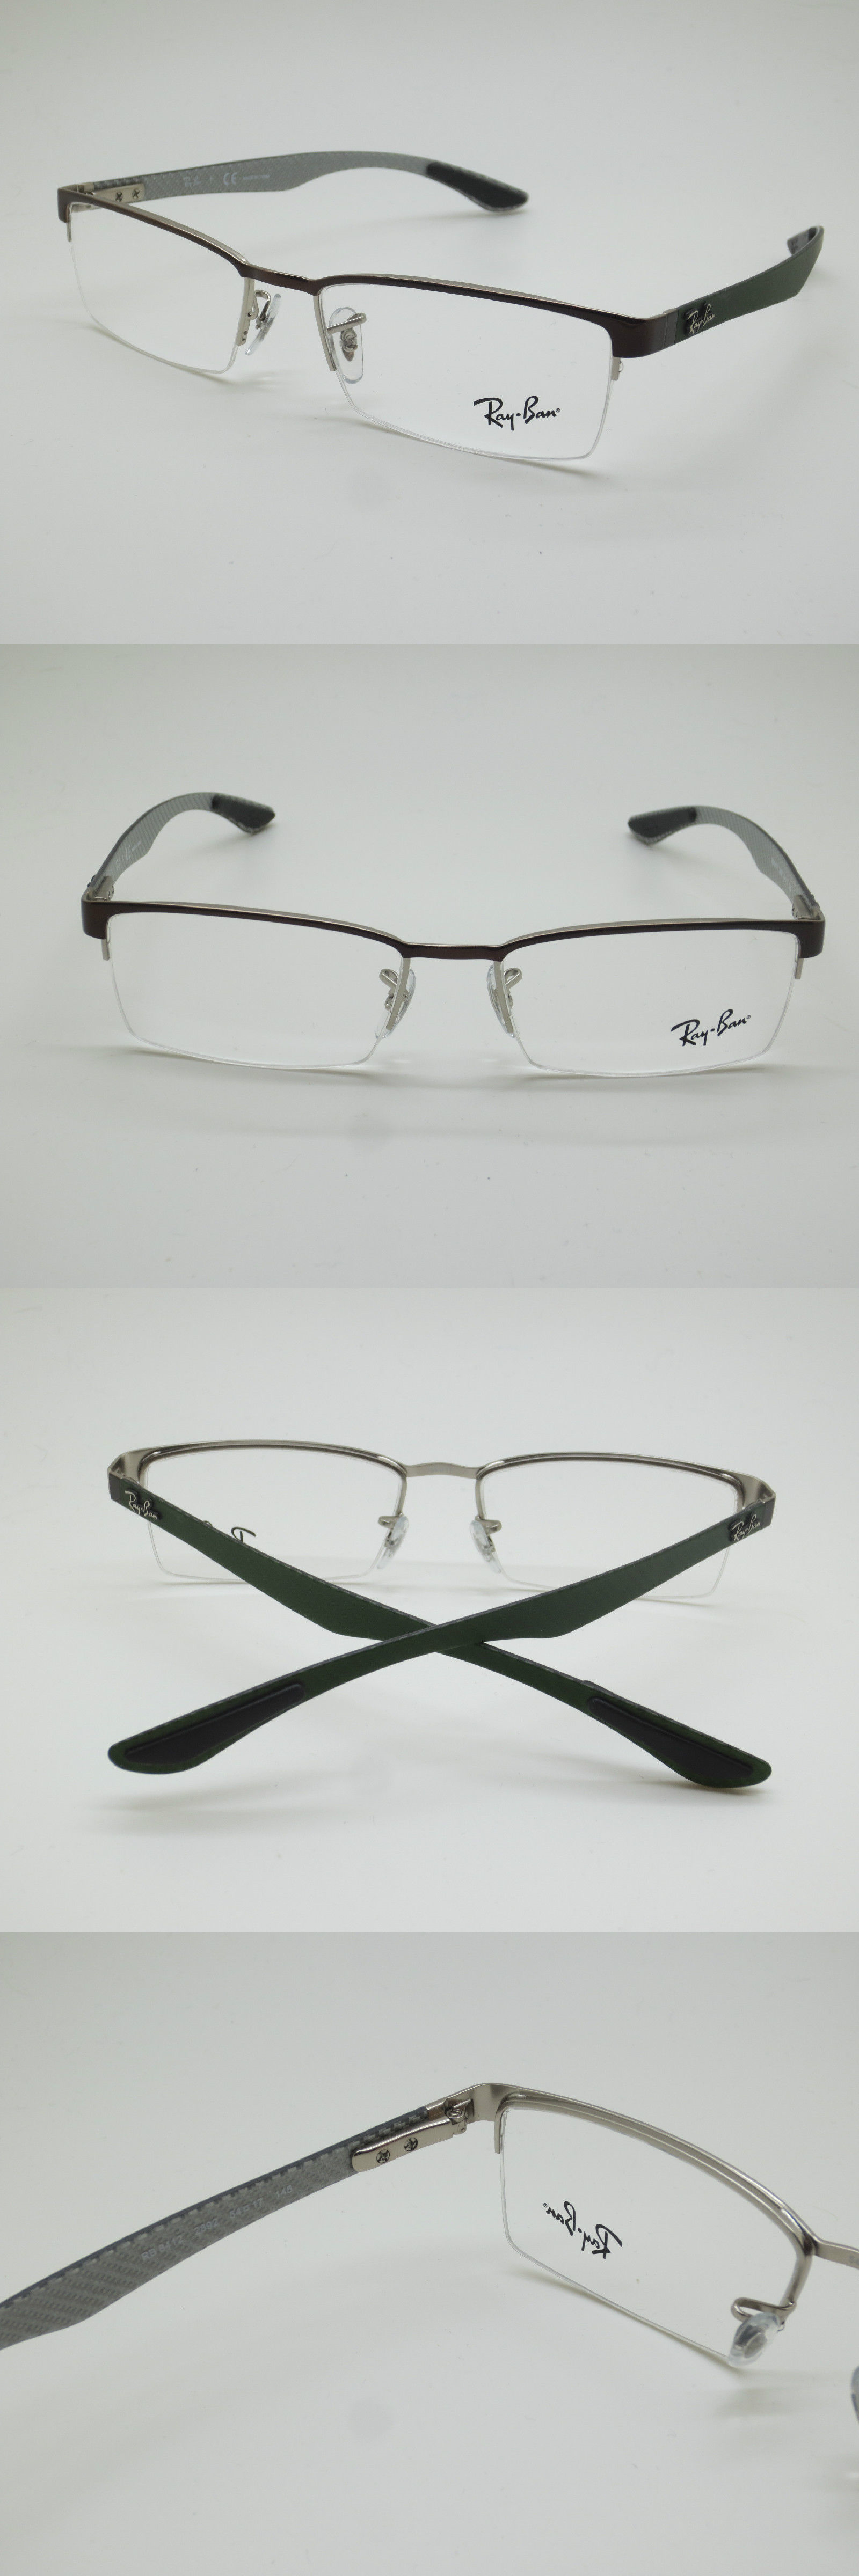 4e9f4a08e2 ... closeout eyeglass frames new authentic ray ban rb 8412 2892 brown green  carbon fiber 54mm rx